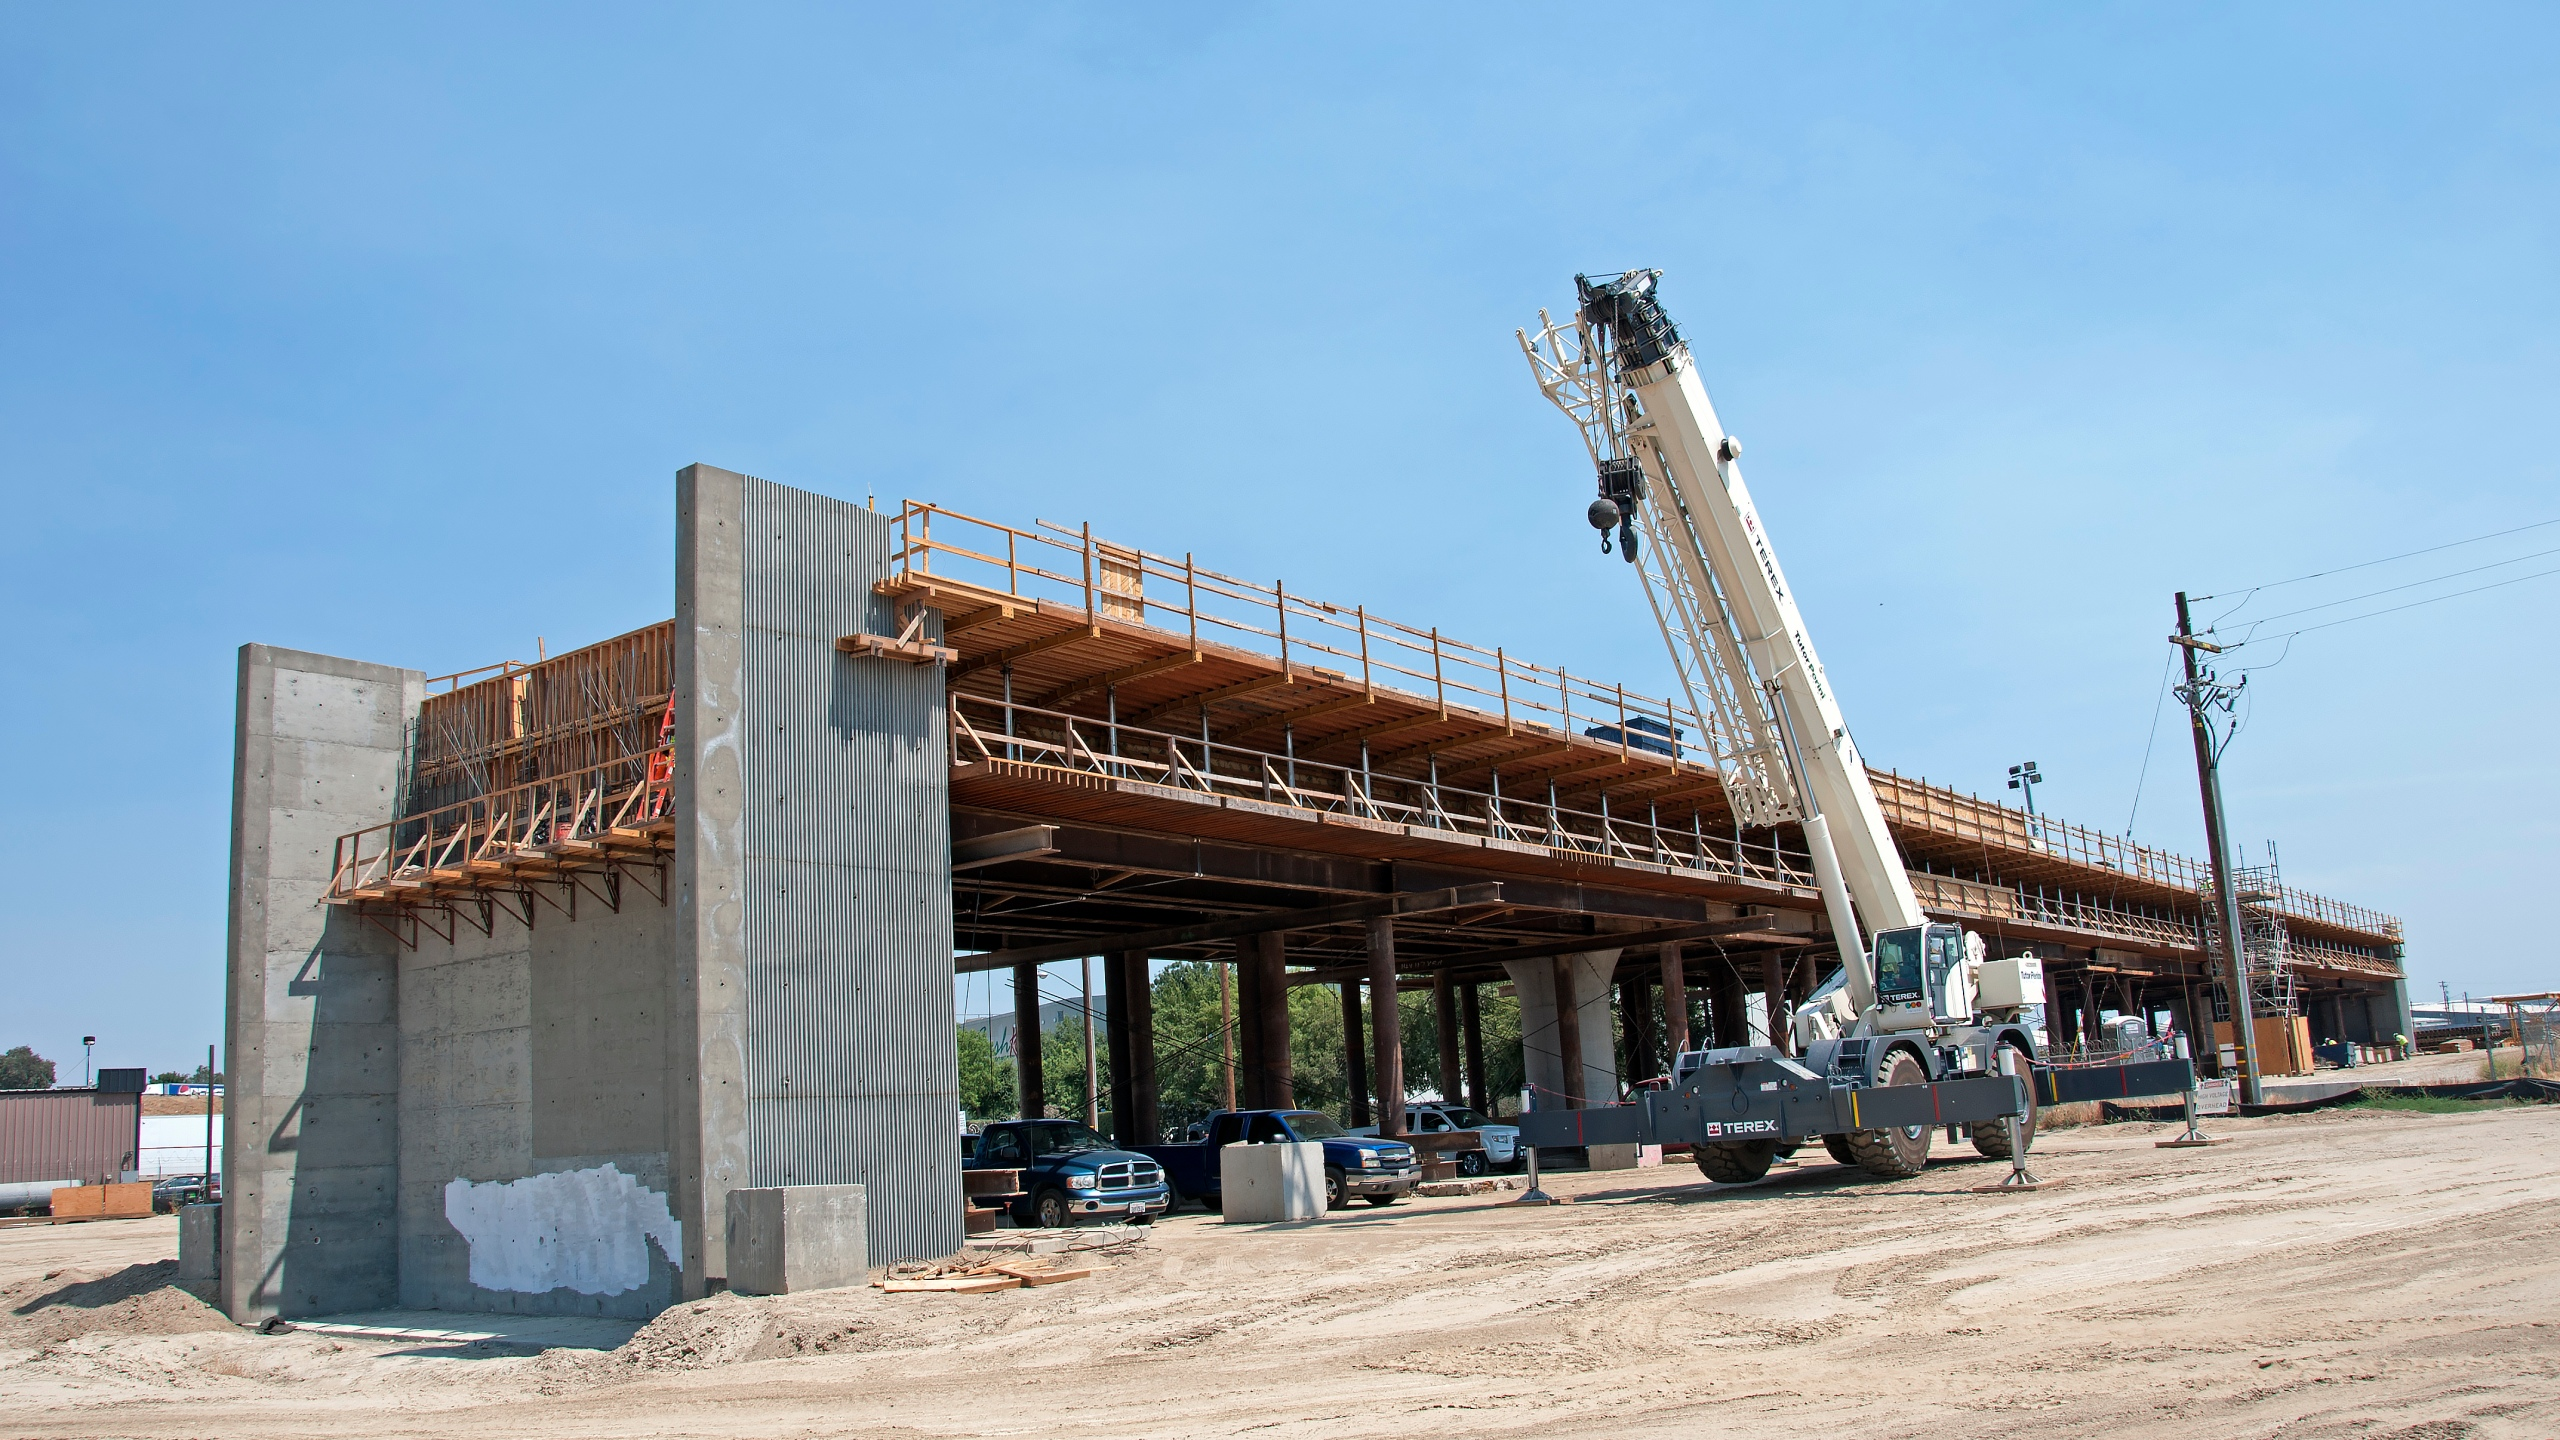 Construction of the Muscat Avenue Viaduct seen west of State Route 99, just east of Cedar Avenue on July 13, 2017, in Fresno. (Credit: California High-Speed Rail Authority via Getty Images)